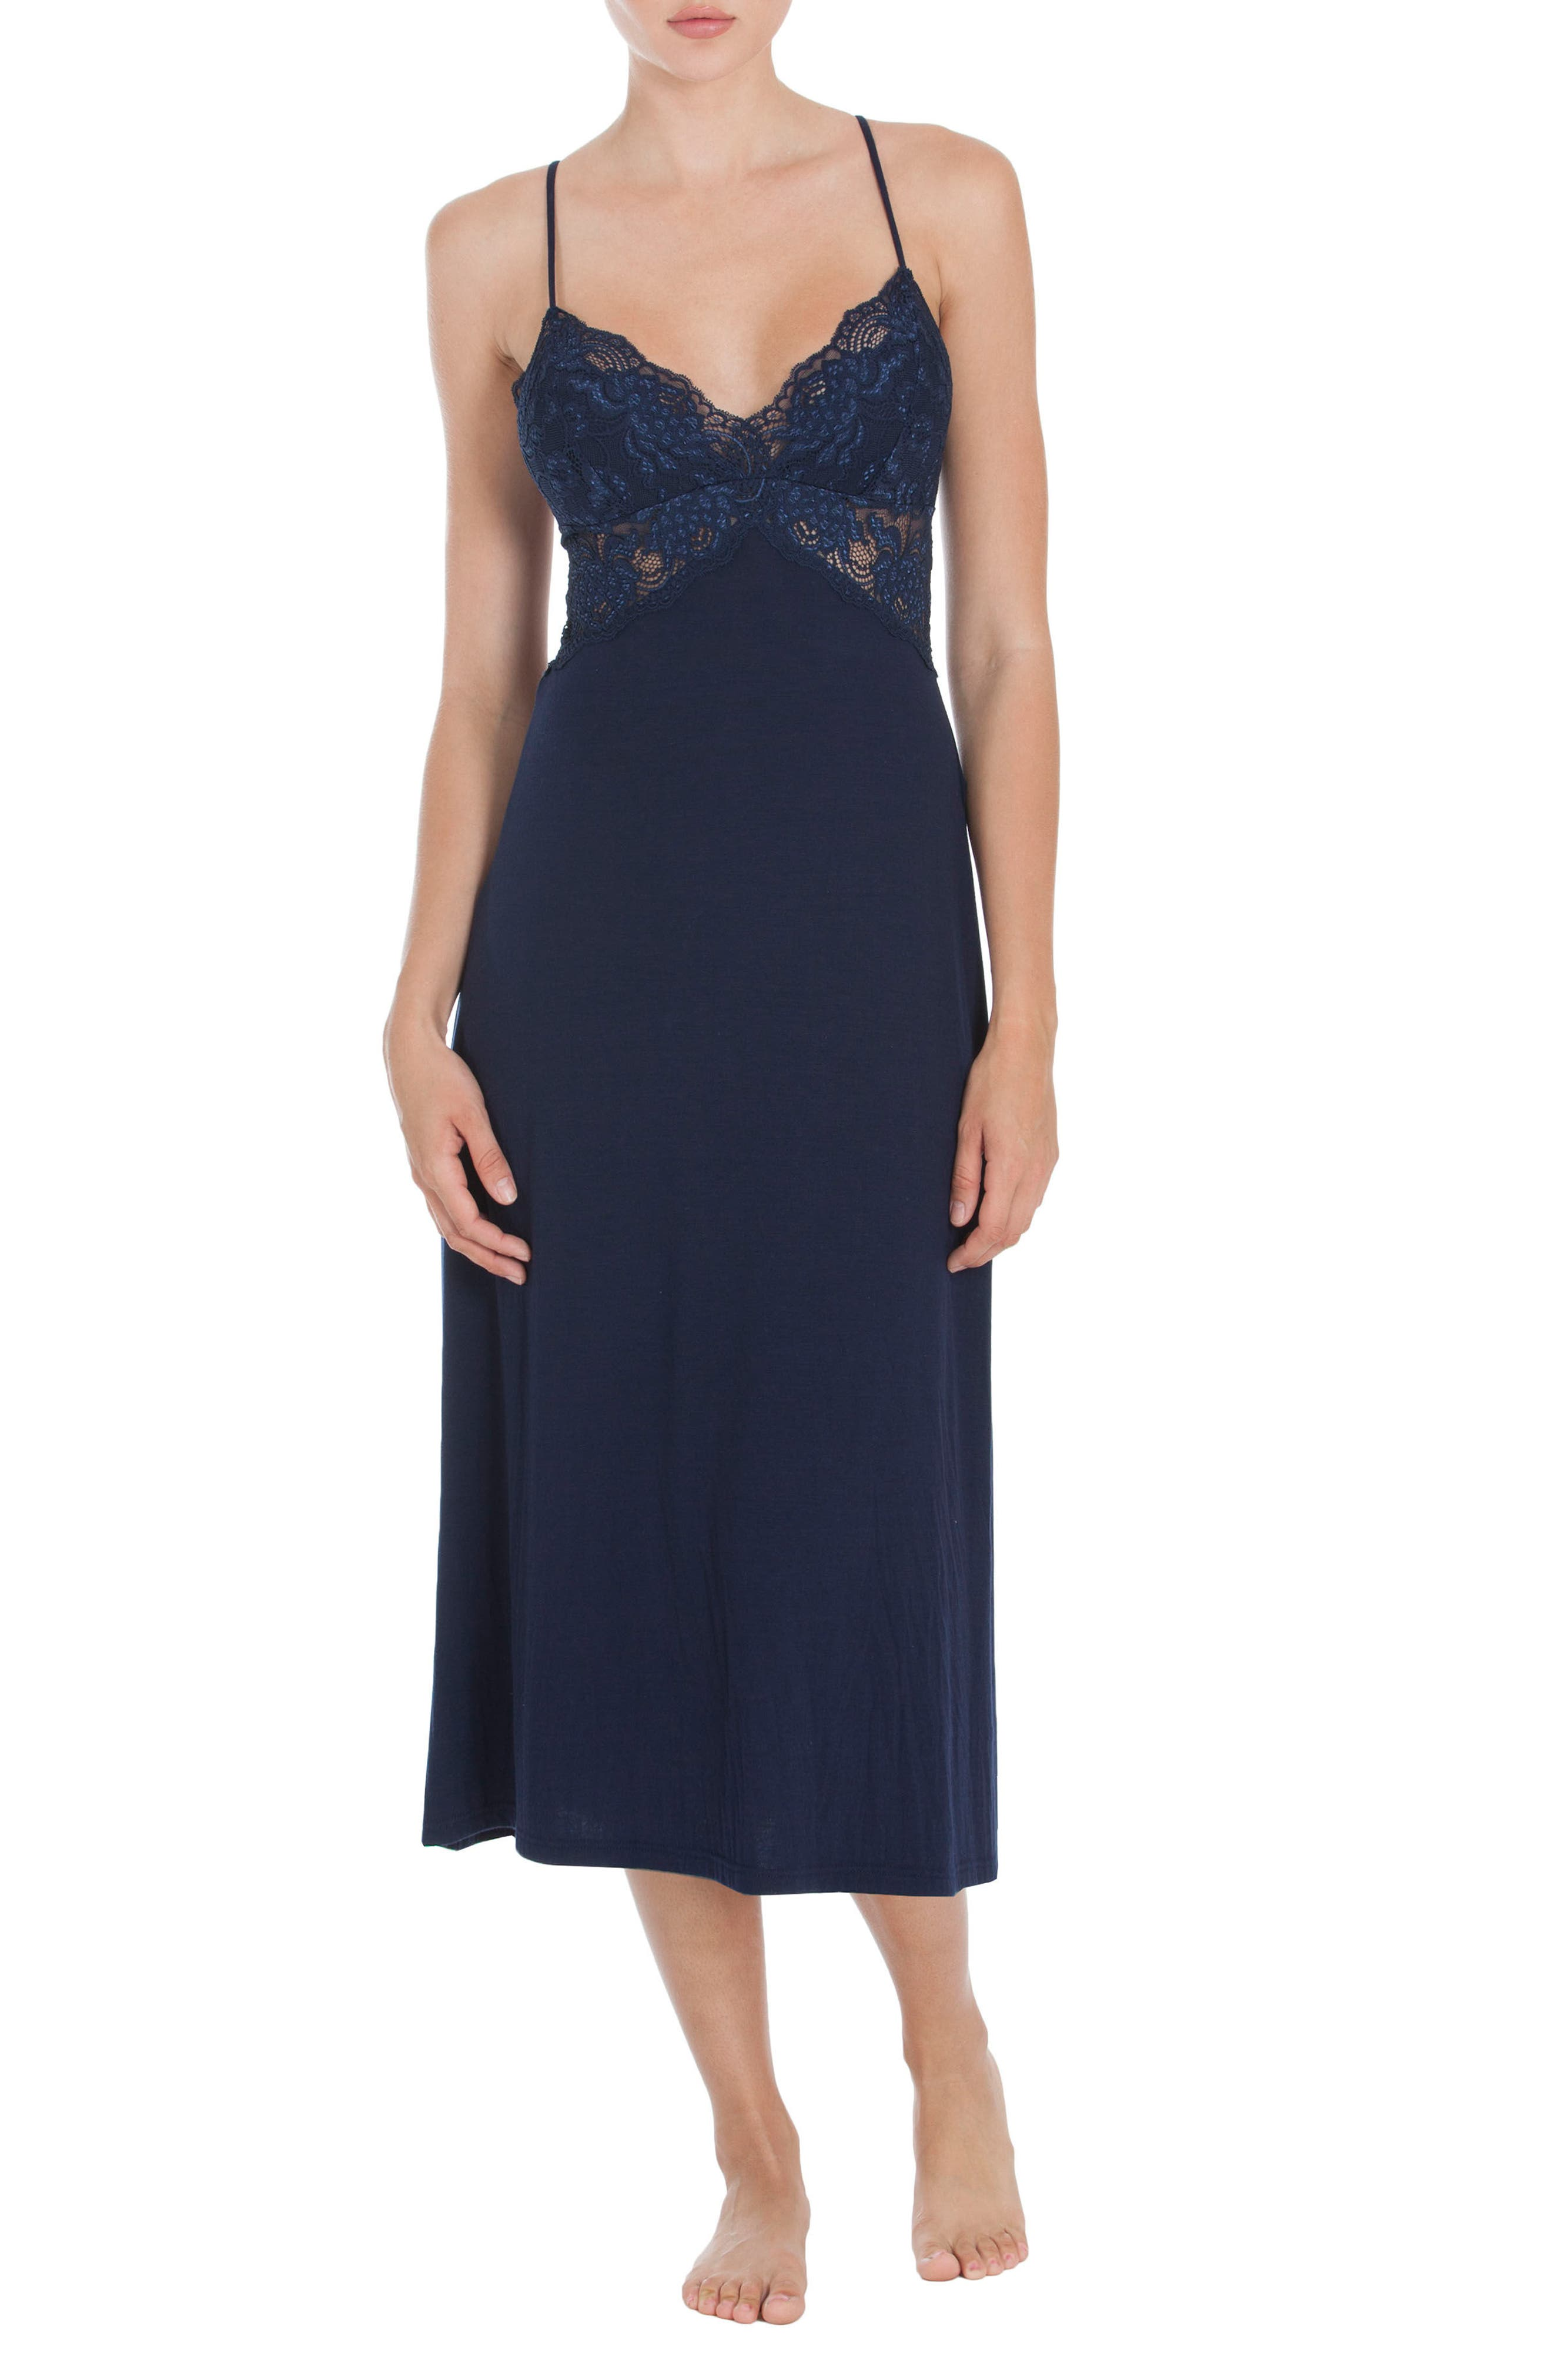 In Bloom by Jonquil Nightgown,                         Main,                         color, 400